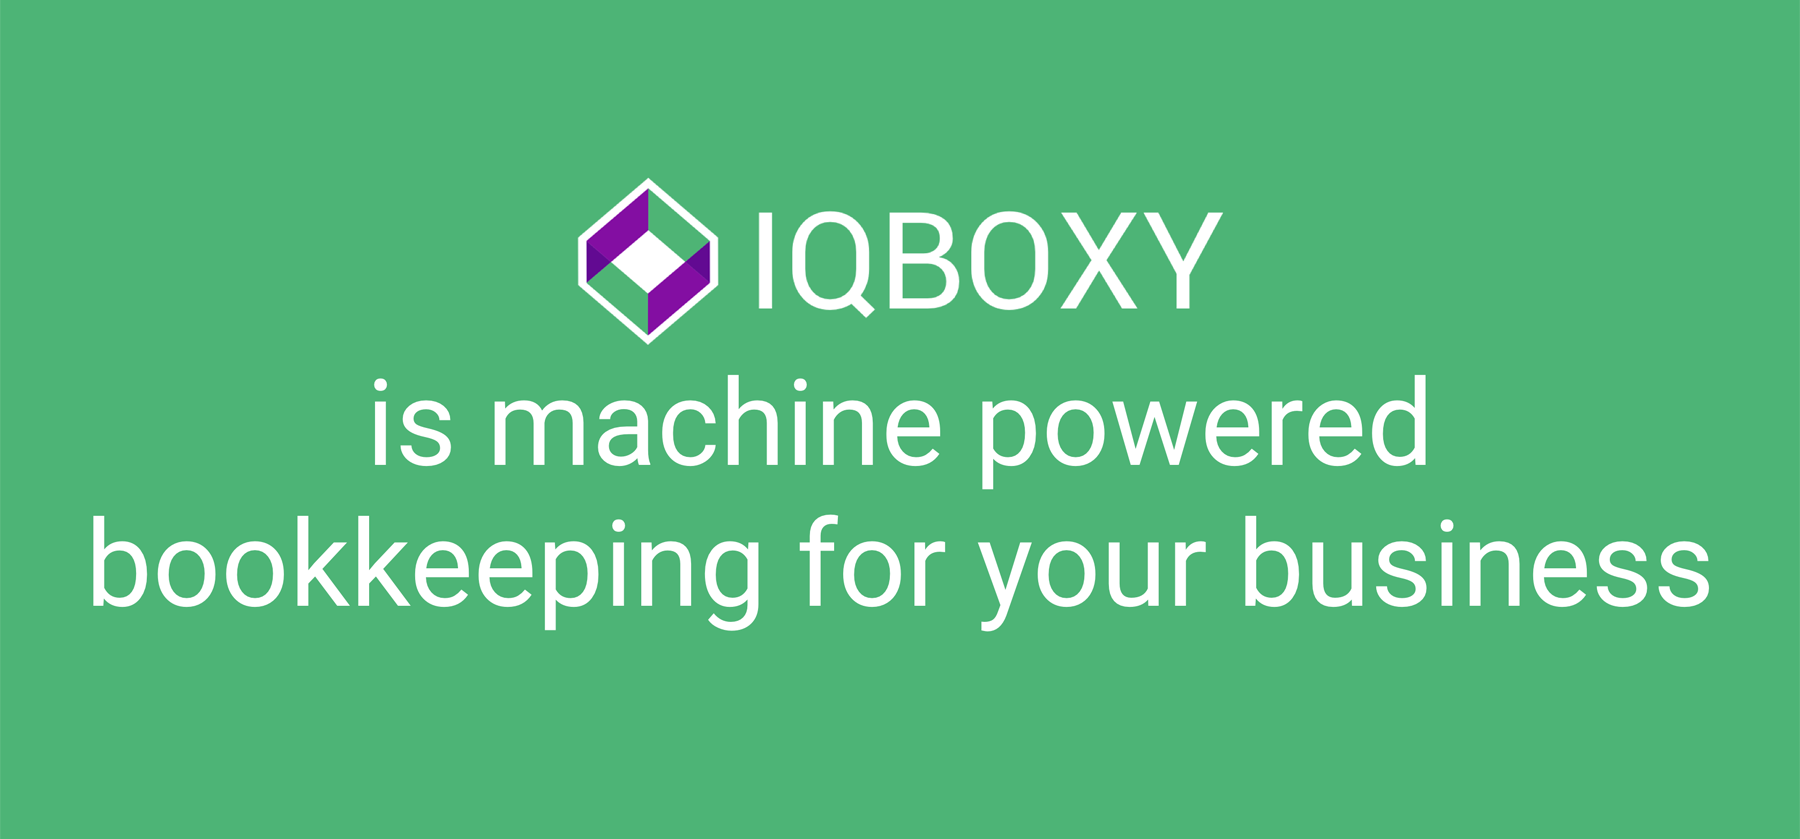 IQBOXY is machine powered bookkeeping for your business